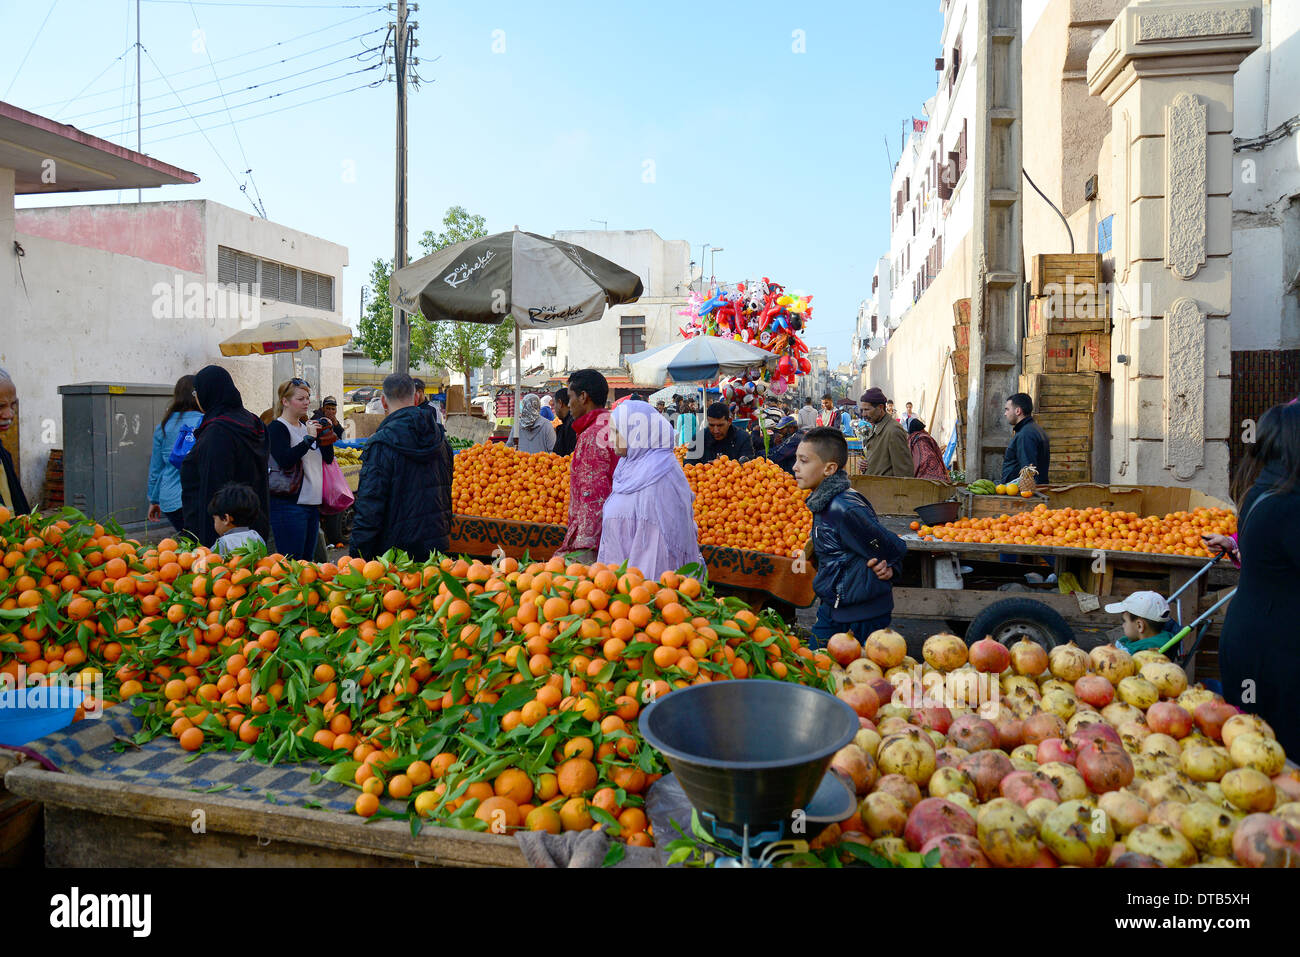 fruit stalls in old medina casa anfa district casablanca. Black Bedroom Furniture Sets. Home Design Ideas